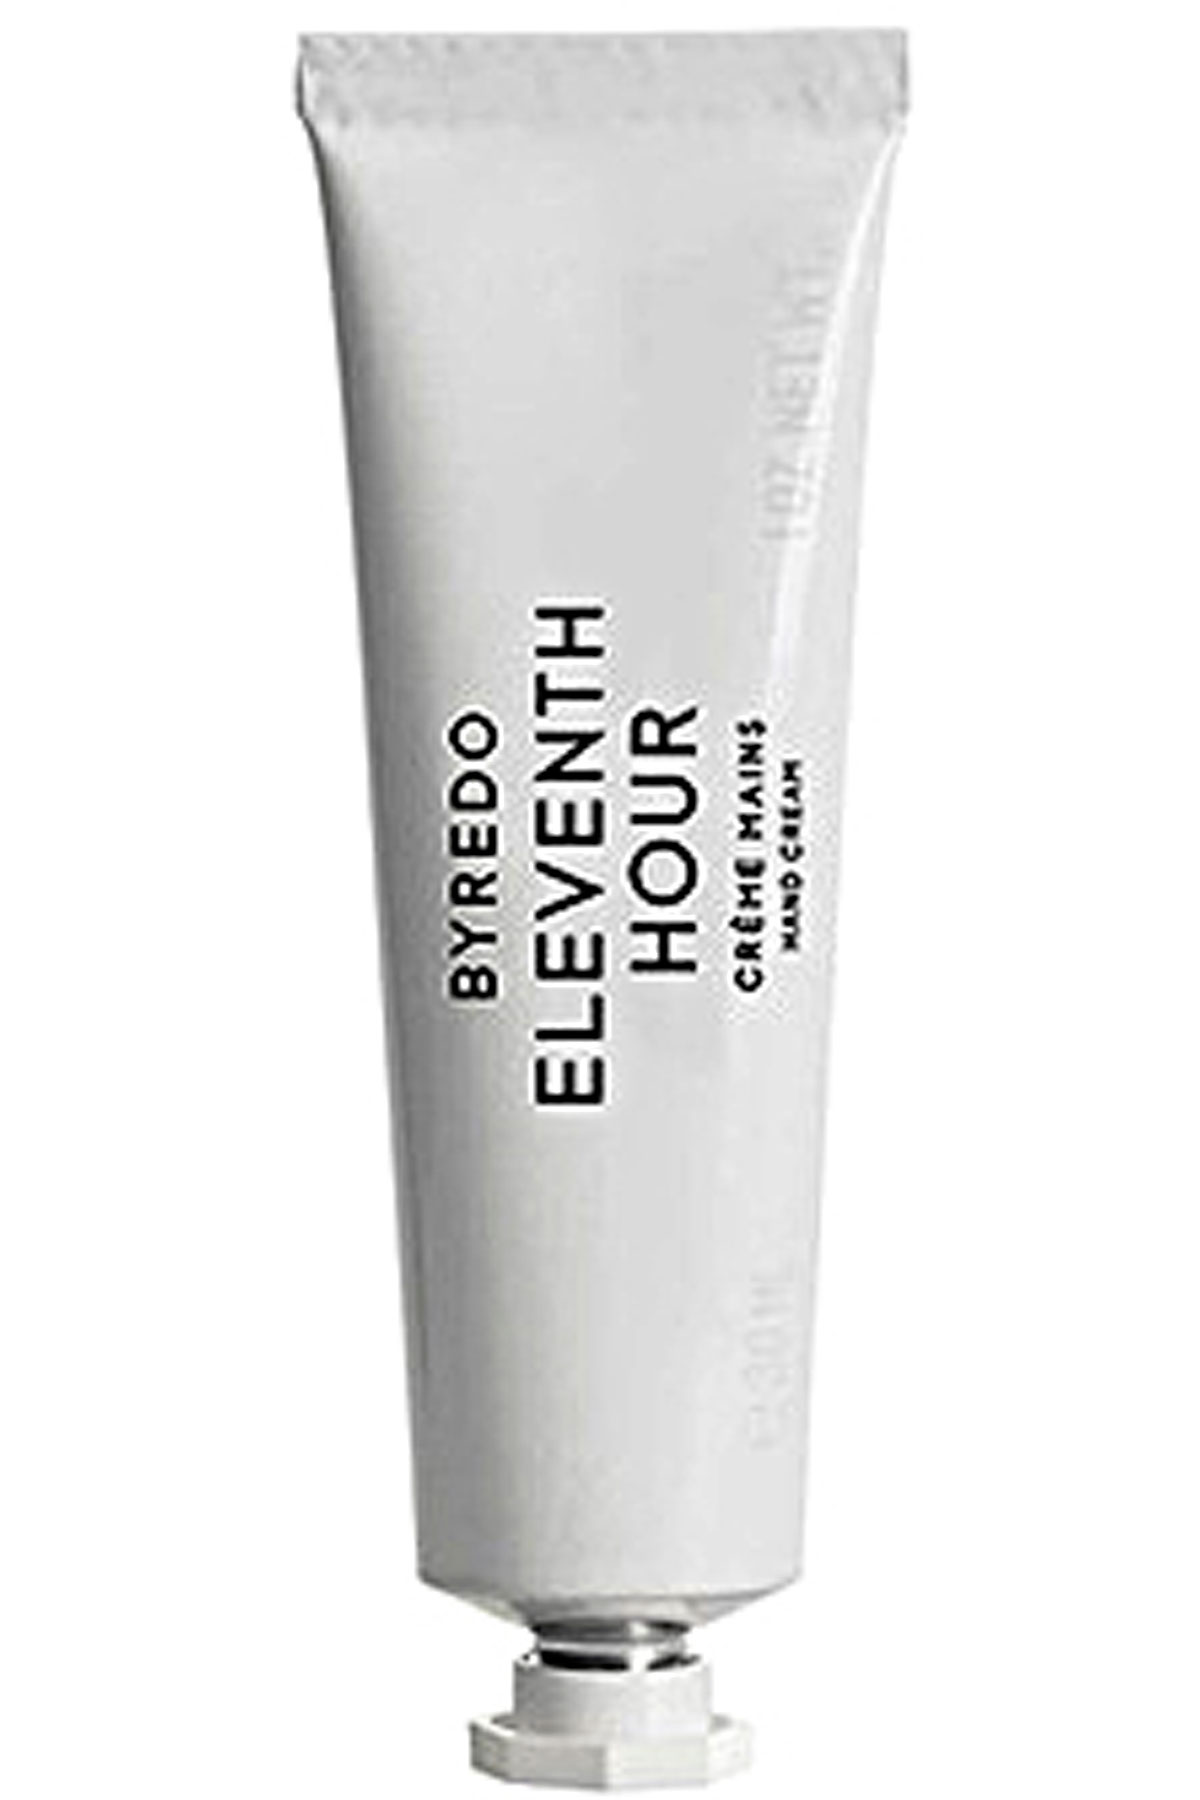 Byredo Beauty for Women, Eleventh Hour - Hand Cream - 30 Ml, 2019, 30 ml